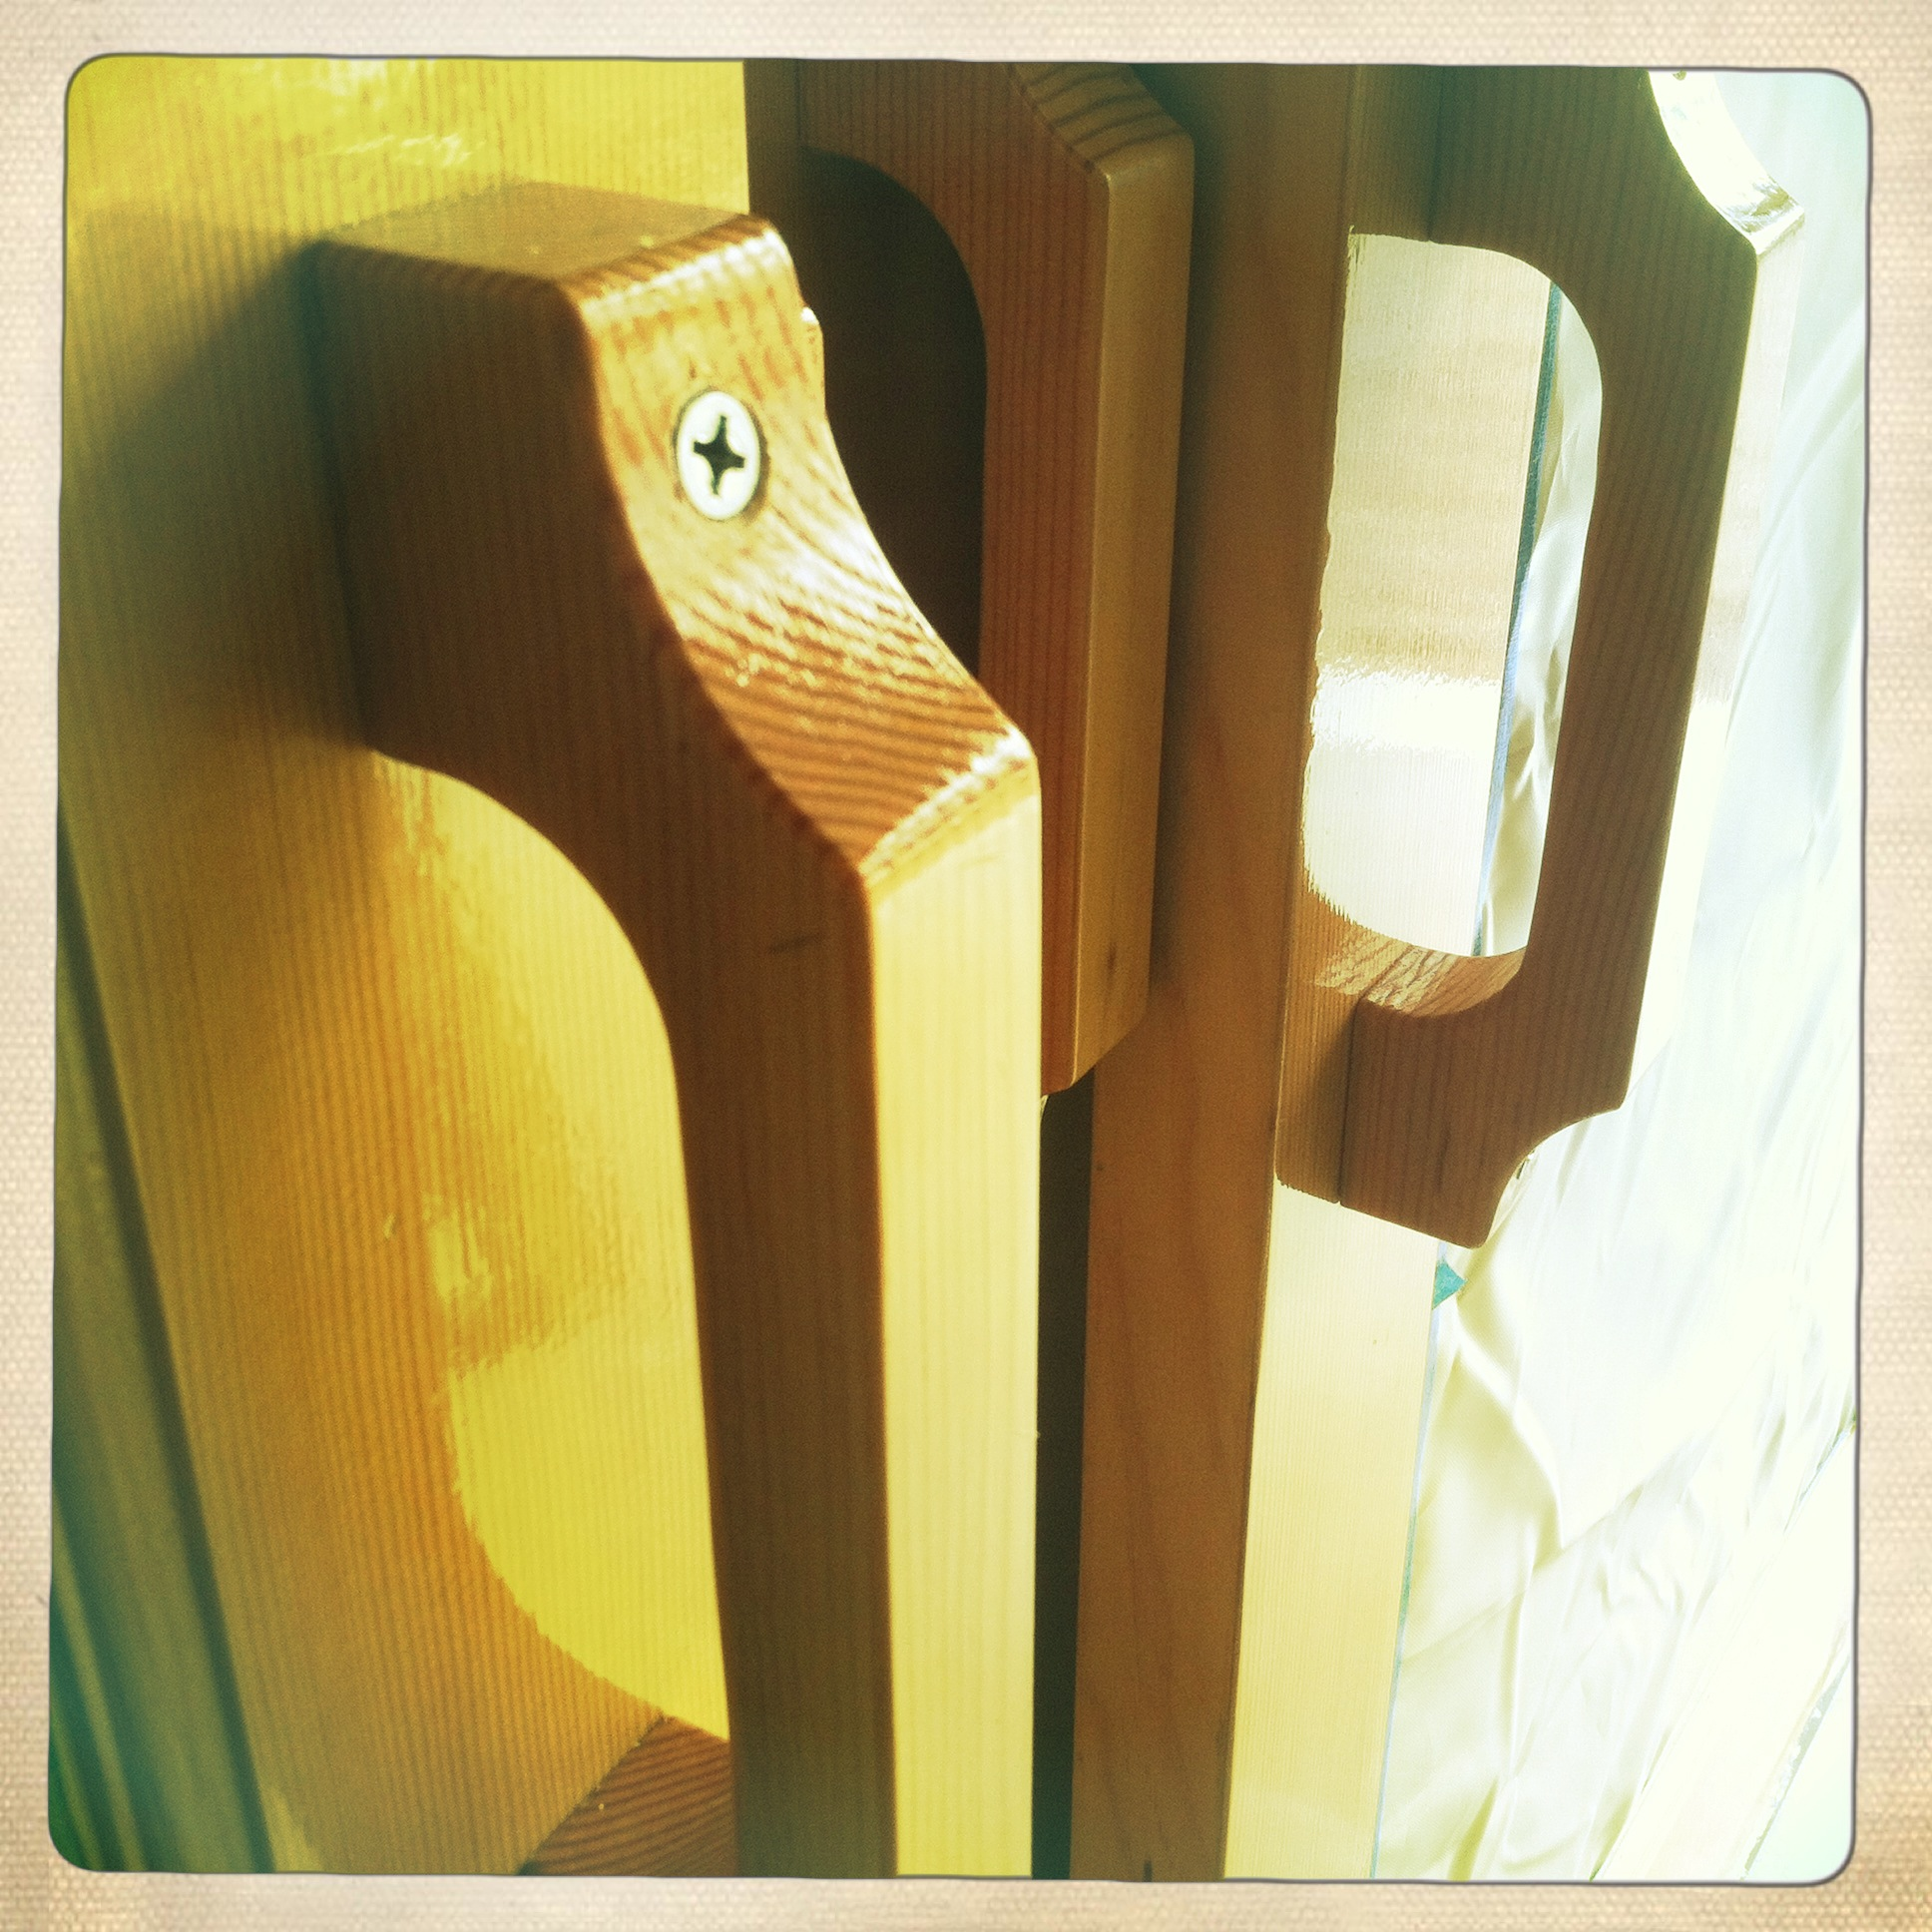 Handmade varnished door handles for the tent at Castle Hill Inn.